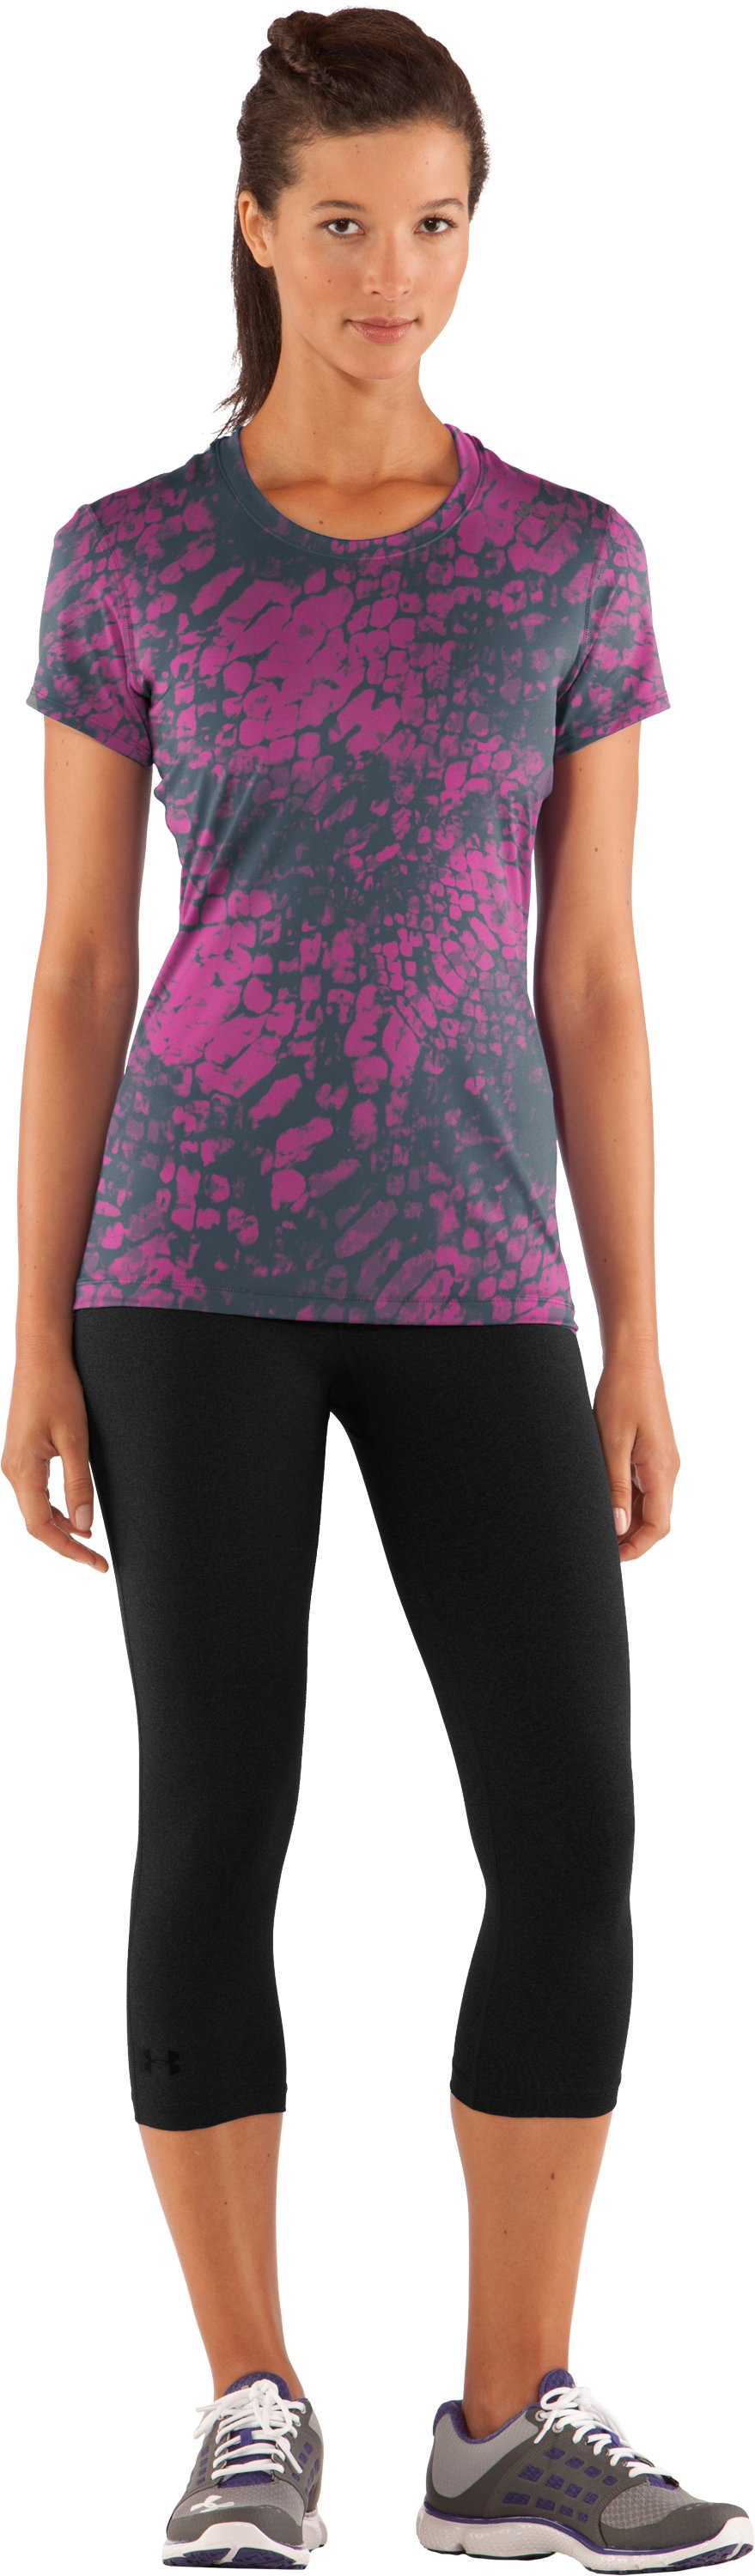 Women's HeatGear® Sonic Printed Short Sleeve, Playful, Front